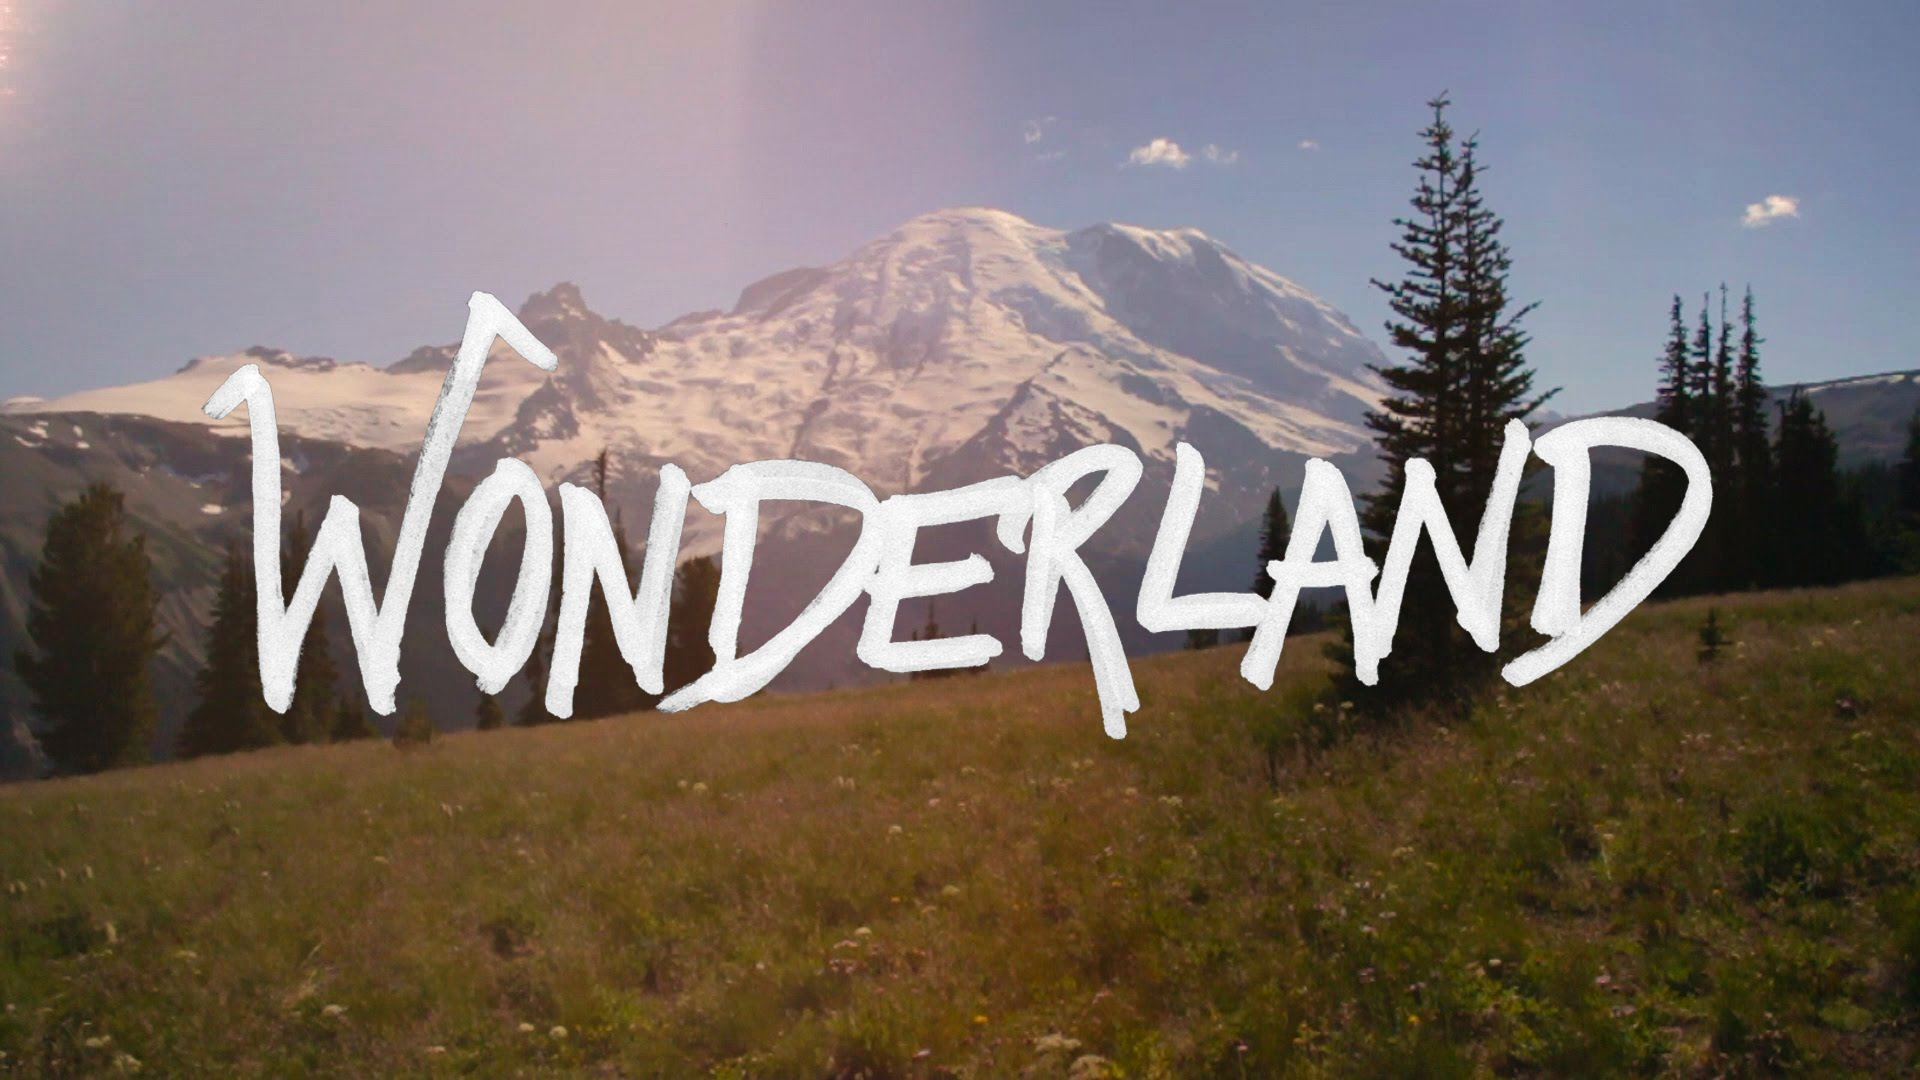 Wonderland Documentary